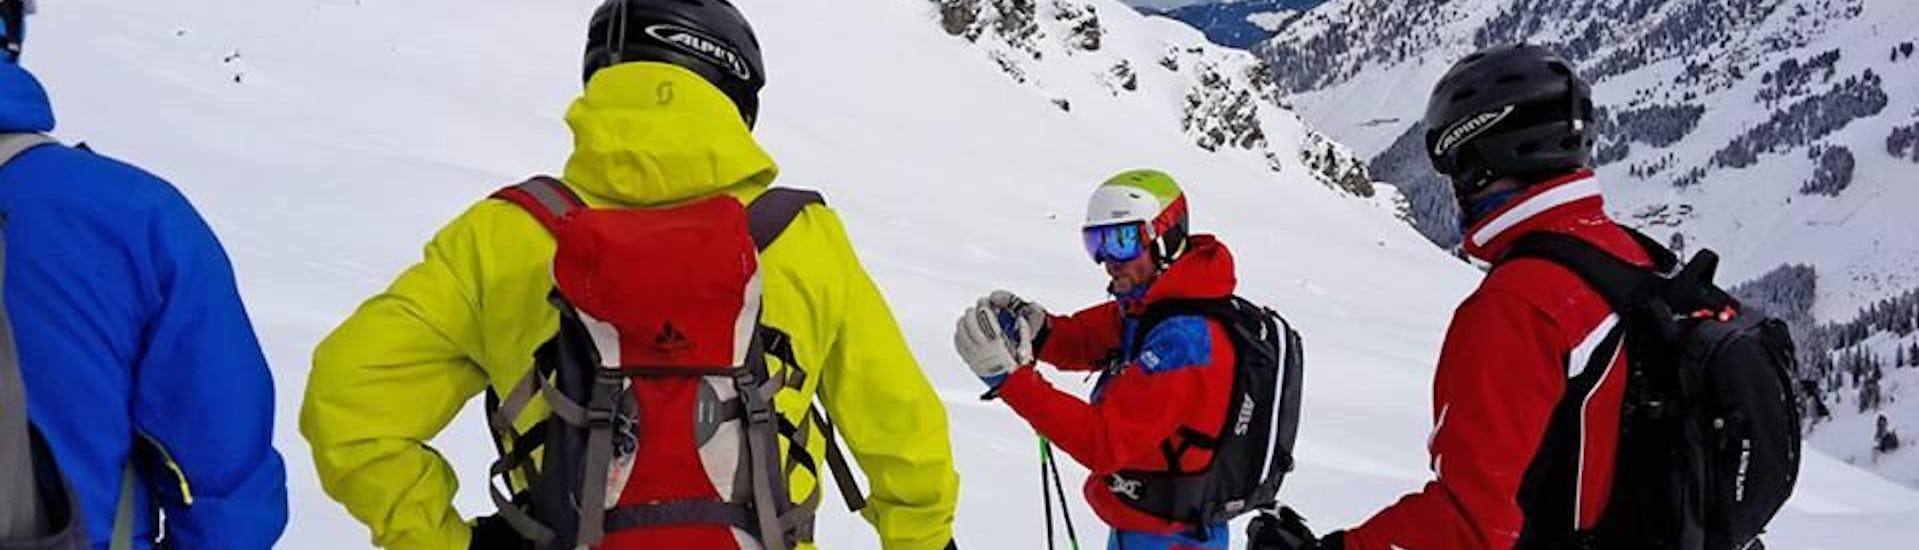 """Ski Lessons """"Weekend"""" for Adults - All Levels"""